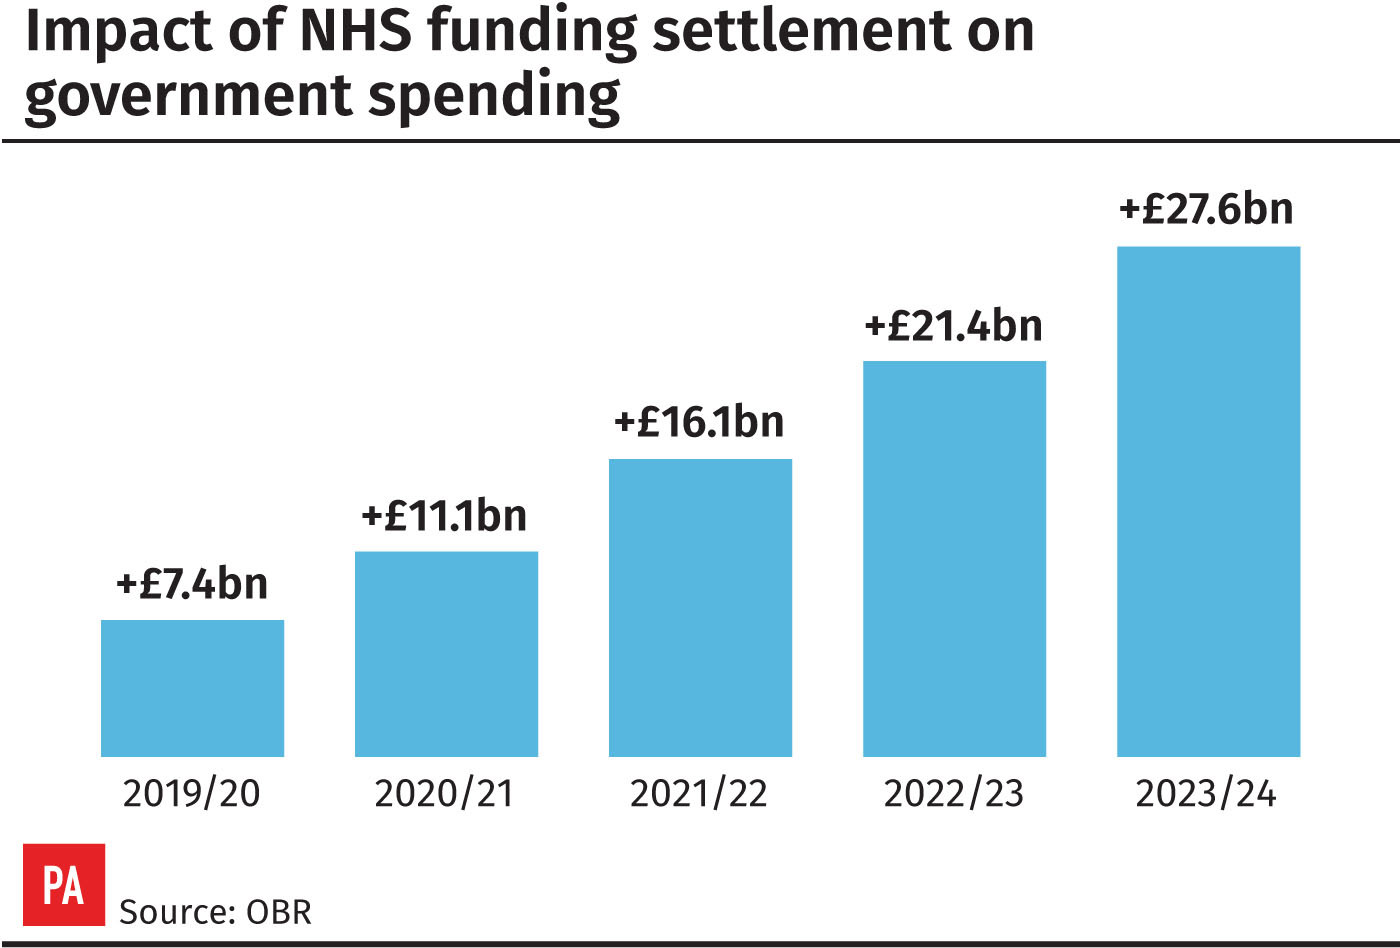 Primary care to receive £4.5bn investment under NHS long-term plan